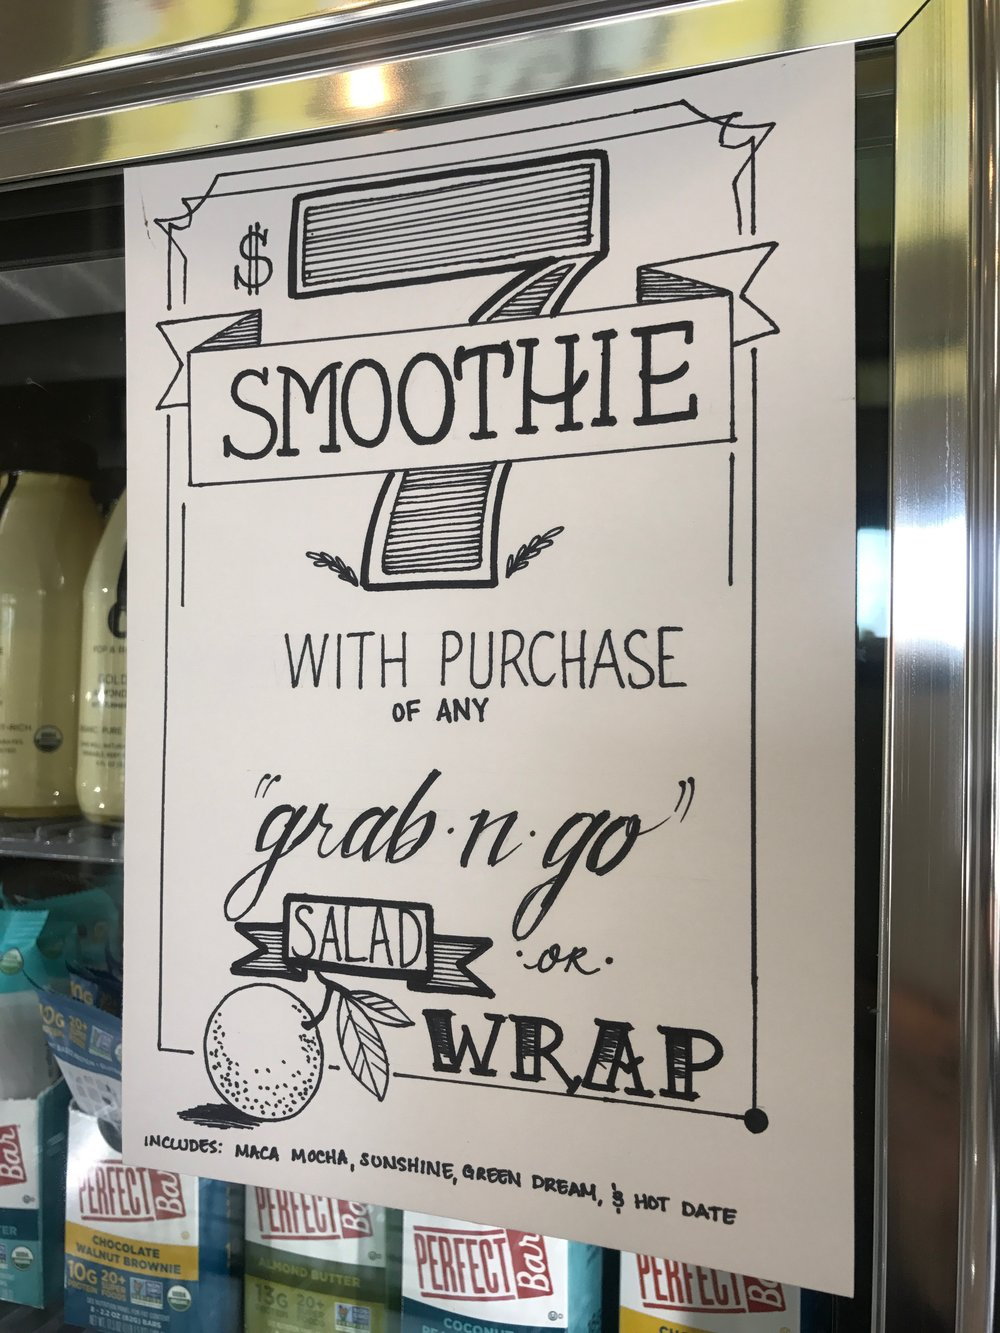 $7 Smoothie Deal - Purchase any Grab n Go wrap or salad and get a smoothie for only $7! Includes specified flavors.